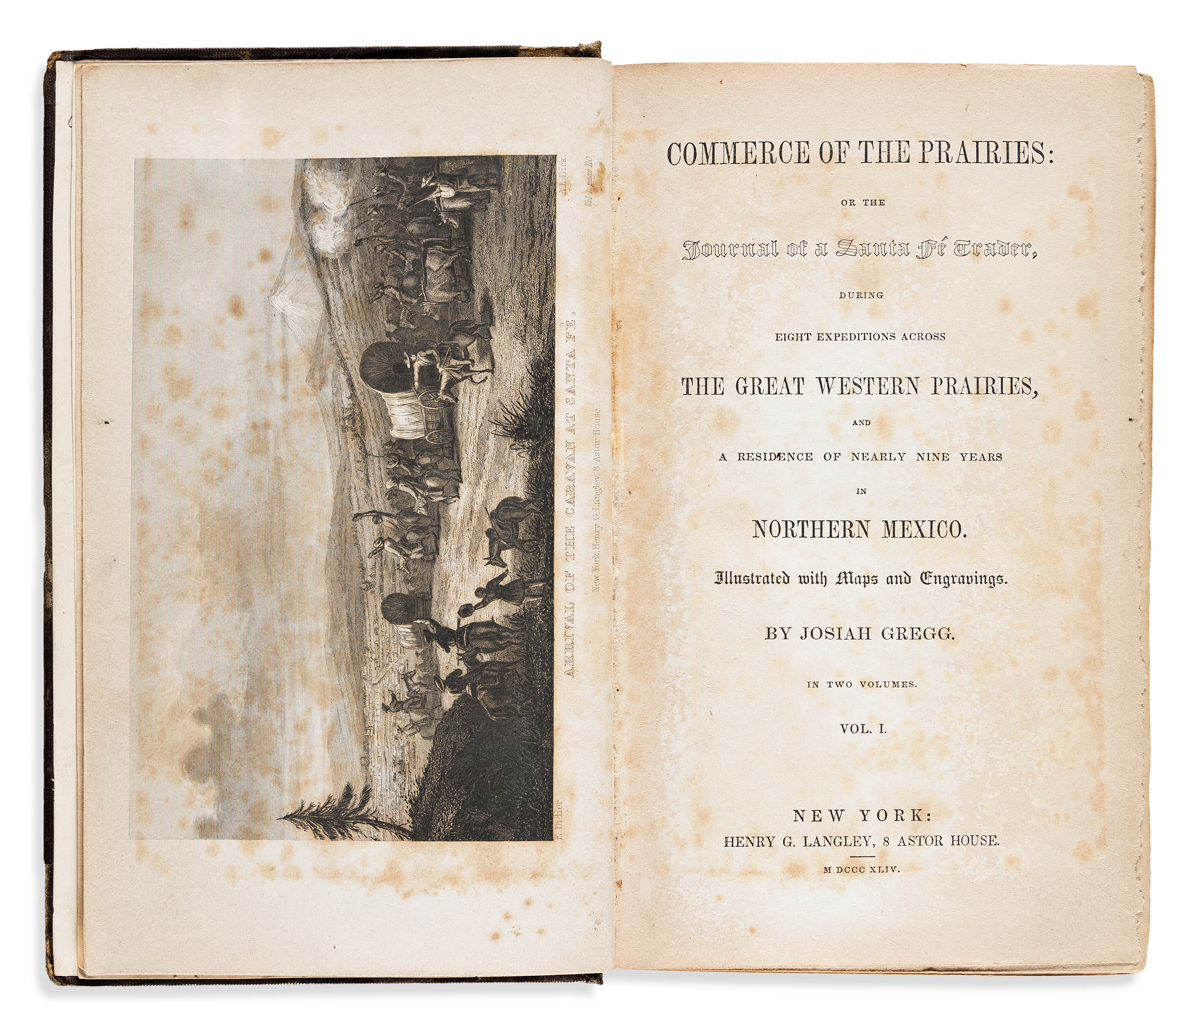 Gregg, Josiah (1806-1850) Commerce of the Prairies: or the Journal of a Santa Fe Trader.